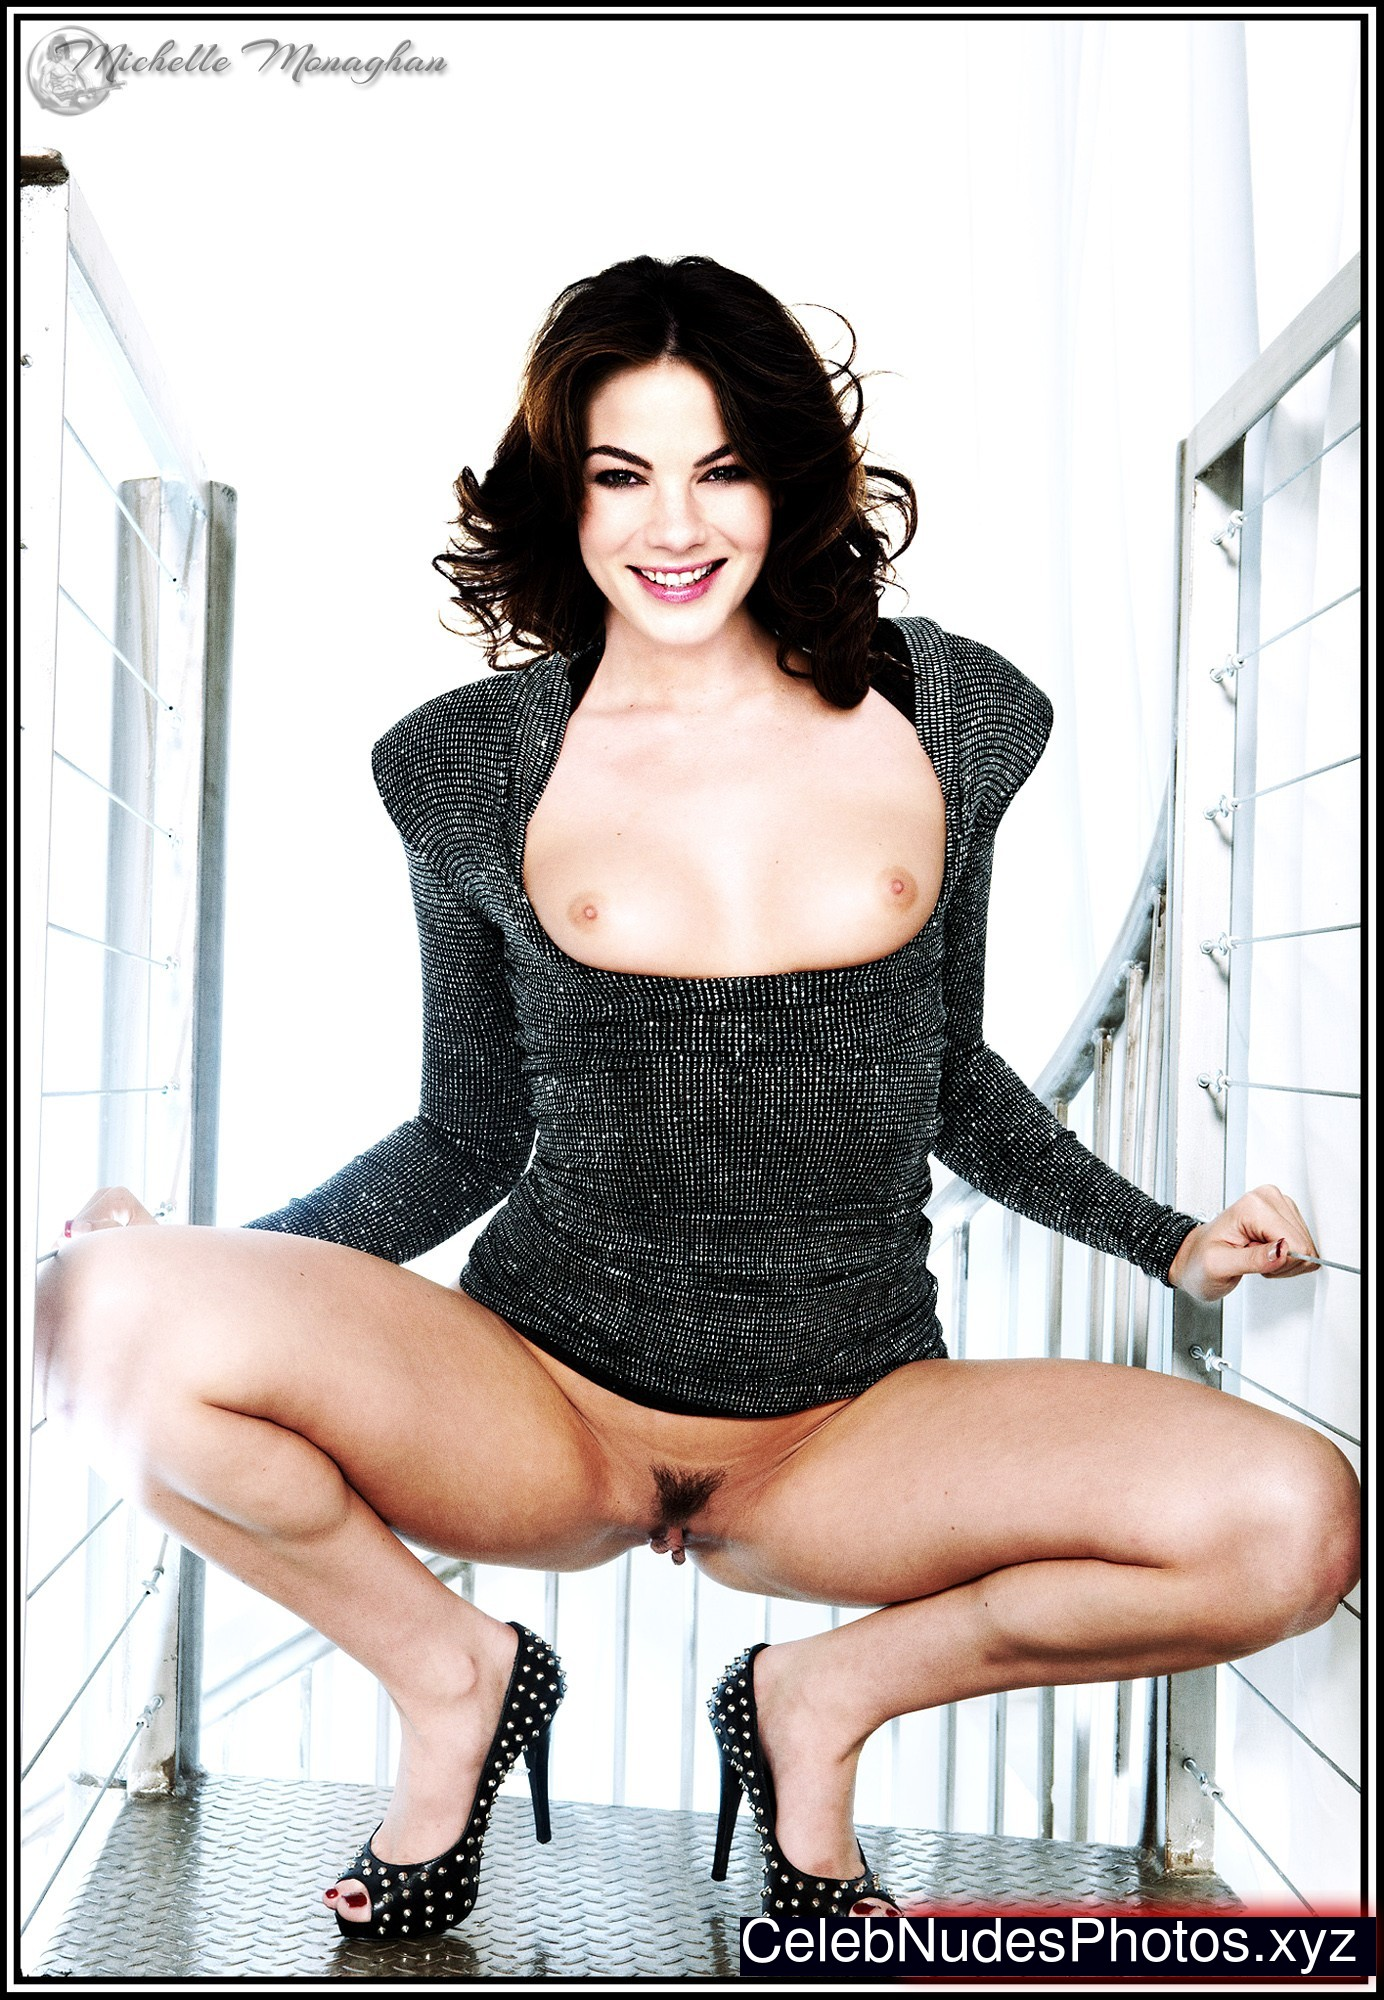 Michelle Monaghan free nude celebs